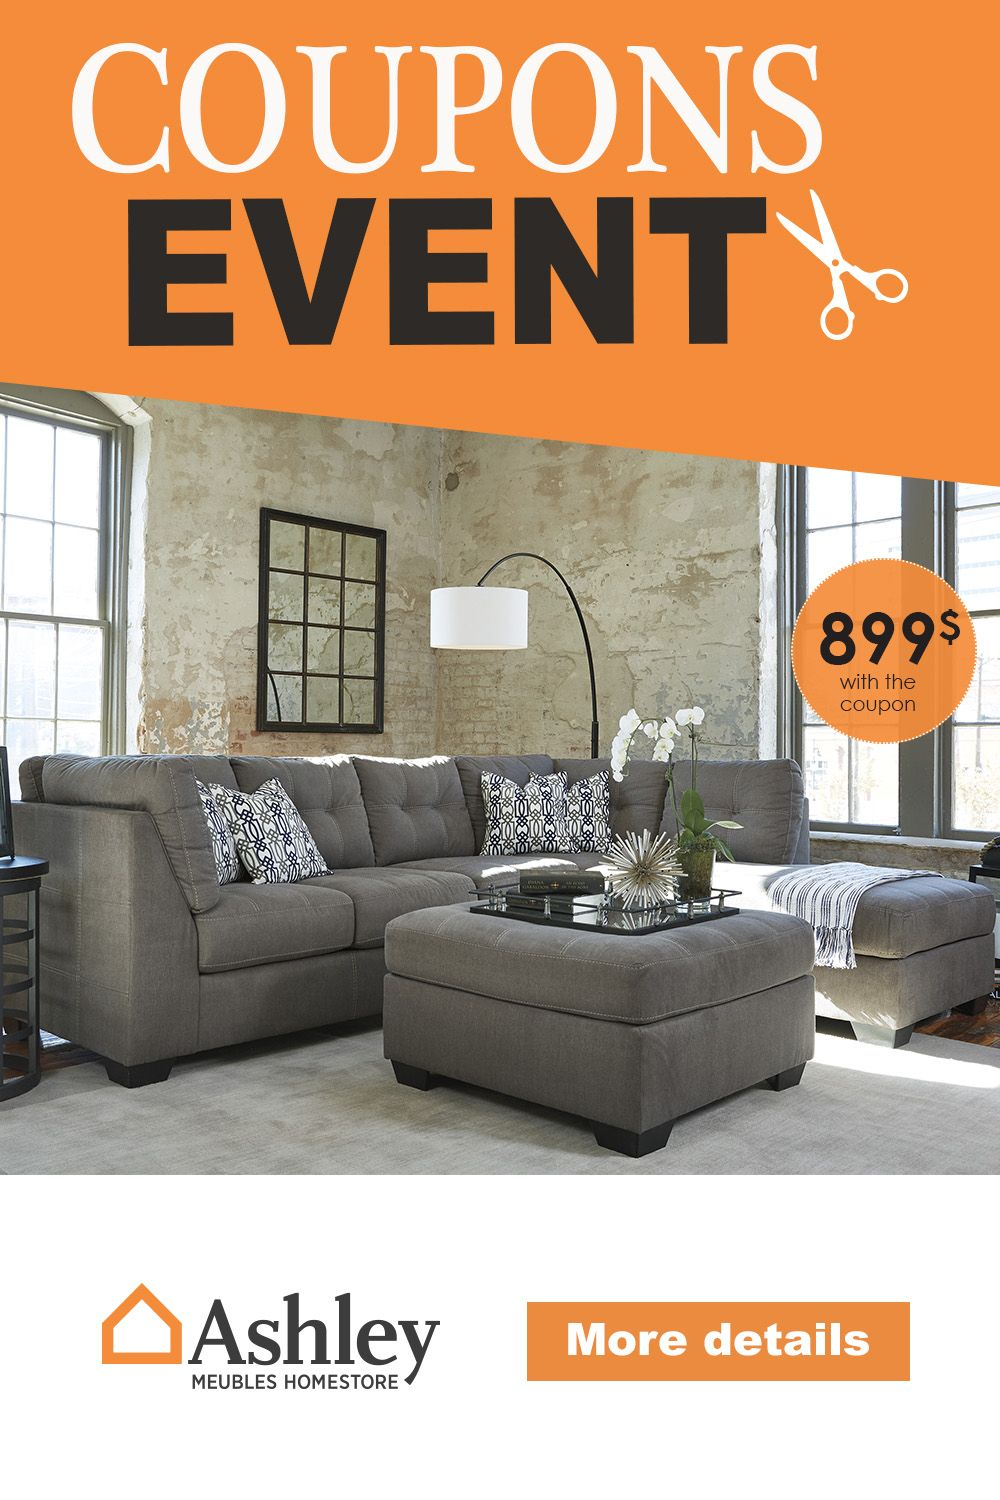 Enjoy Our Coupon Event And Get A Free Footrest When You Buy A Sectional Find Out More Coupons N Ashley Furniture Sectional Ashley Furniture Mattress Furniture